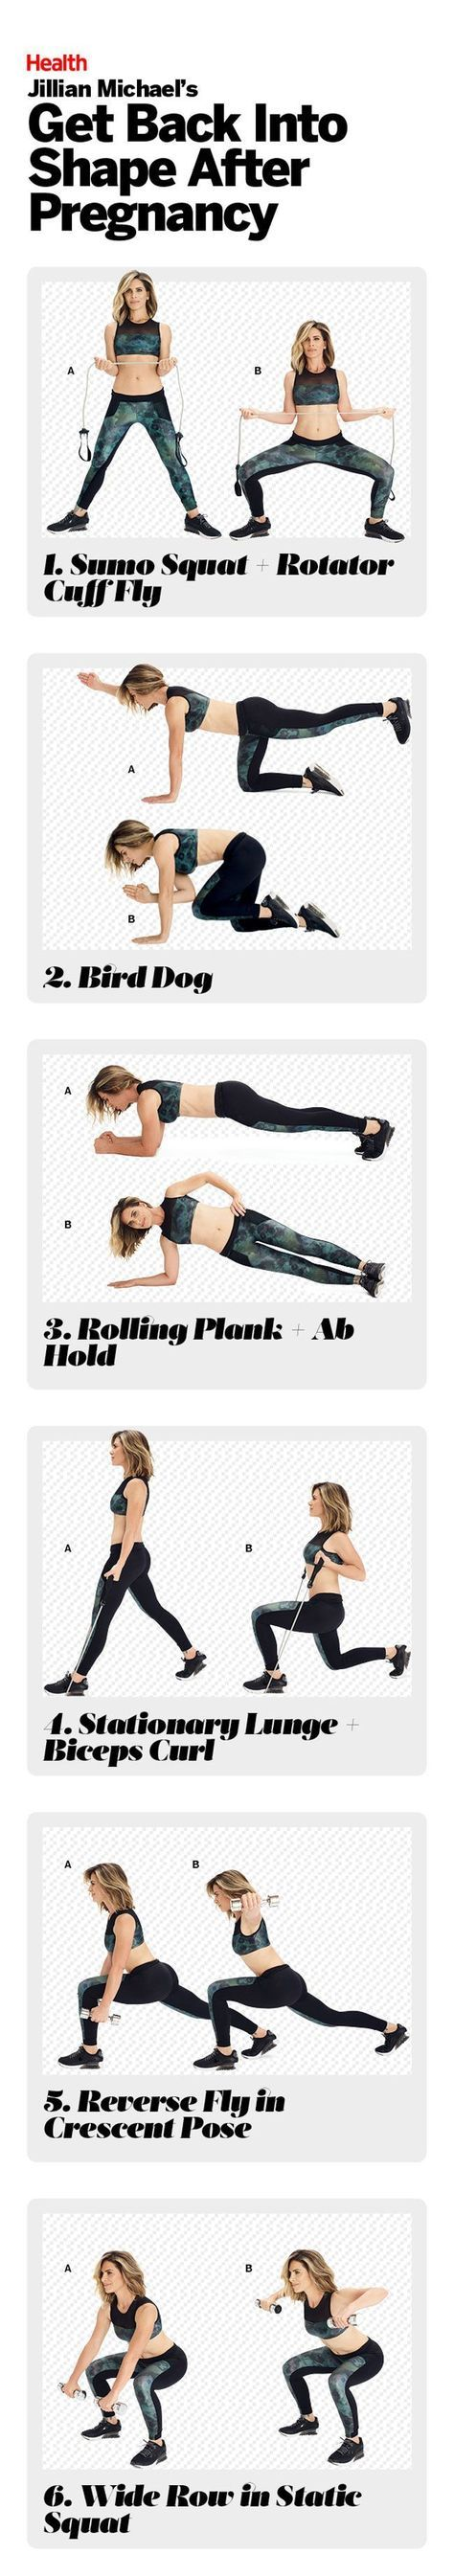 how to get back in shape after pregnancy